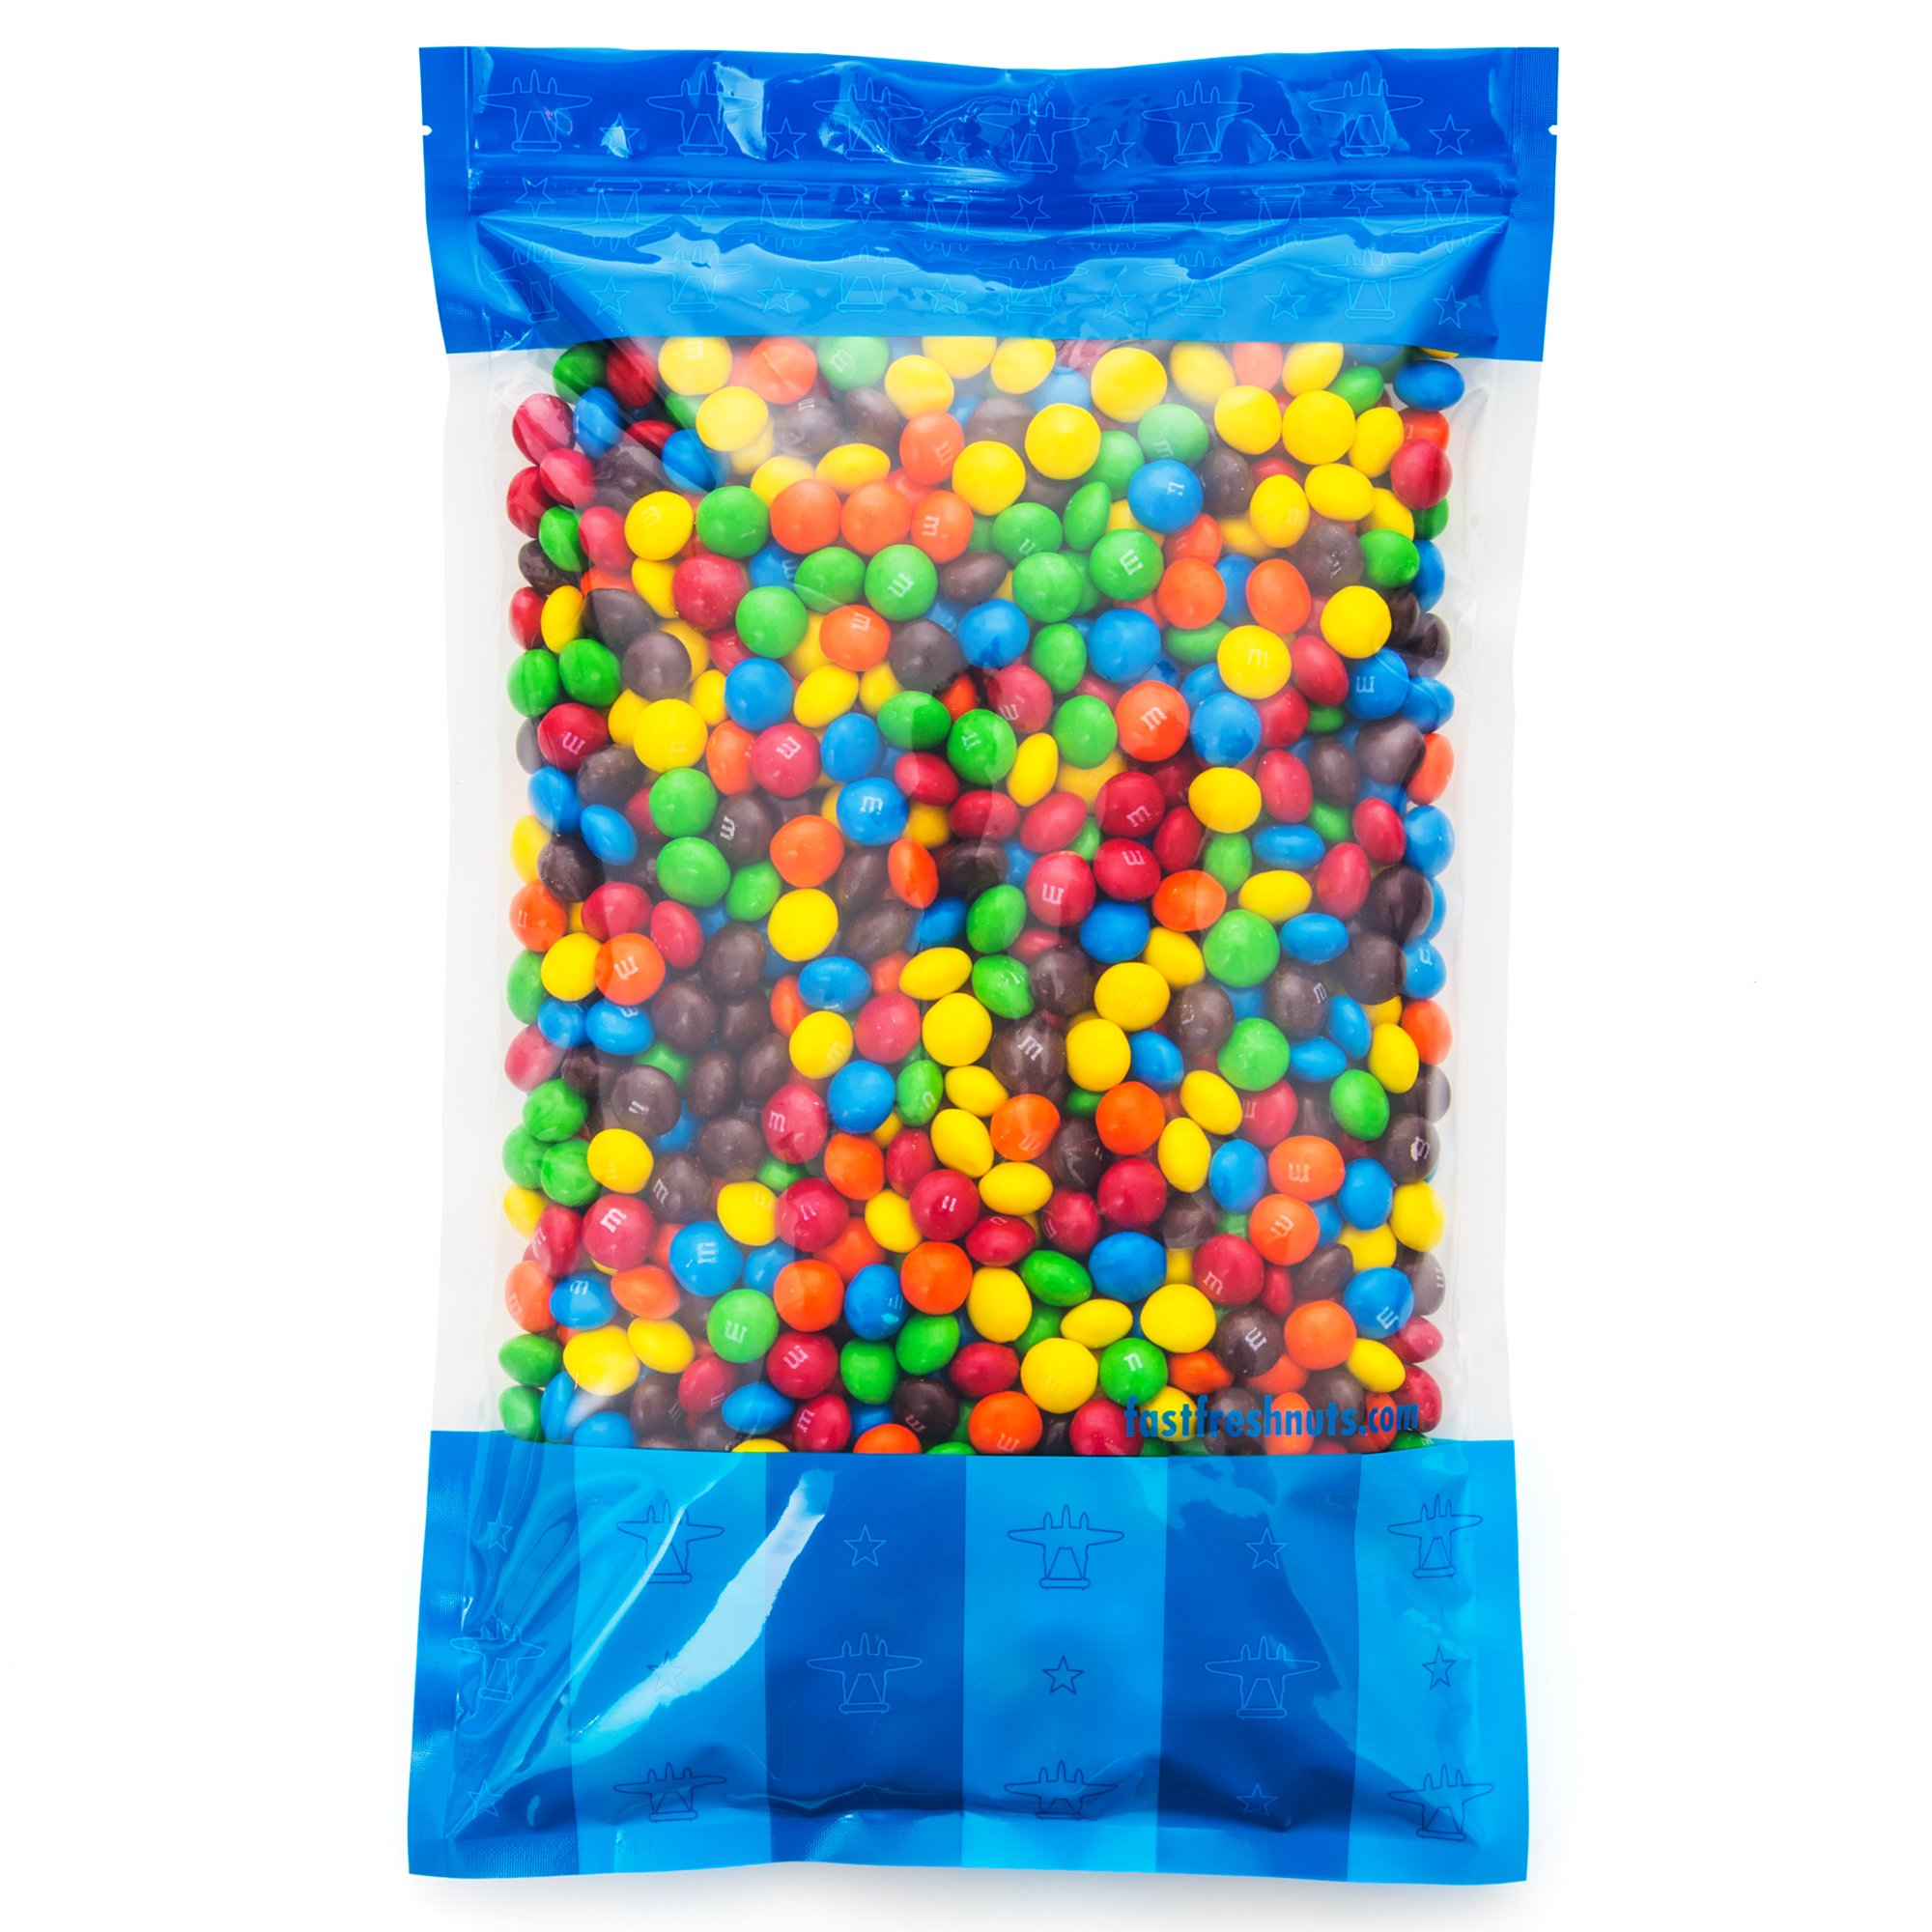 Bulk M&M's Plain Milk Chocolate in a Resealable Bomber Bag - Guaranteed 7 lbs - Fresh, Tasty Treats - Great for Office Candy Bowls - Wholesale - Cooking - Baking - Vending - Holidays - Parties